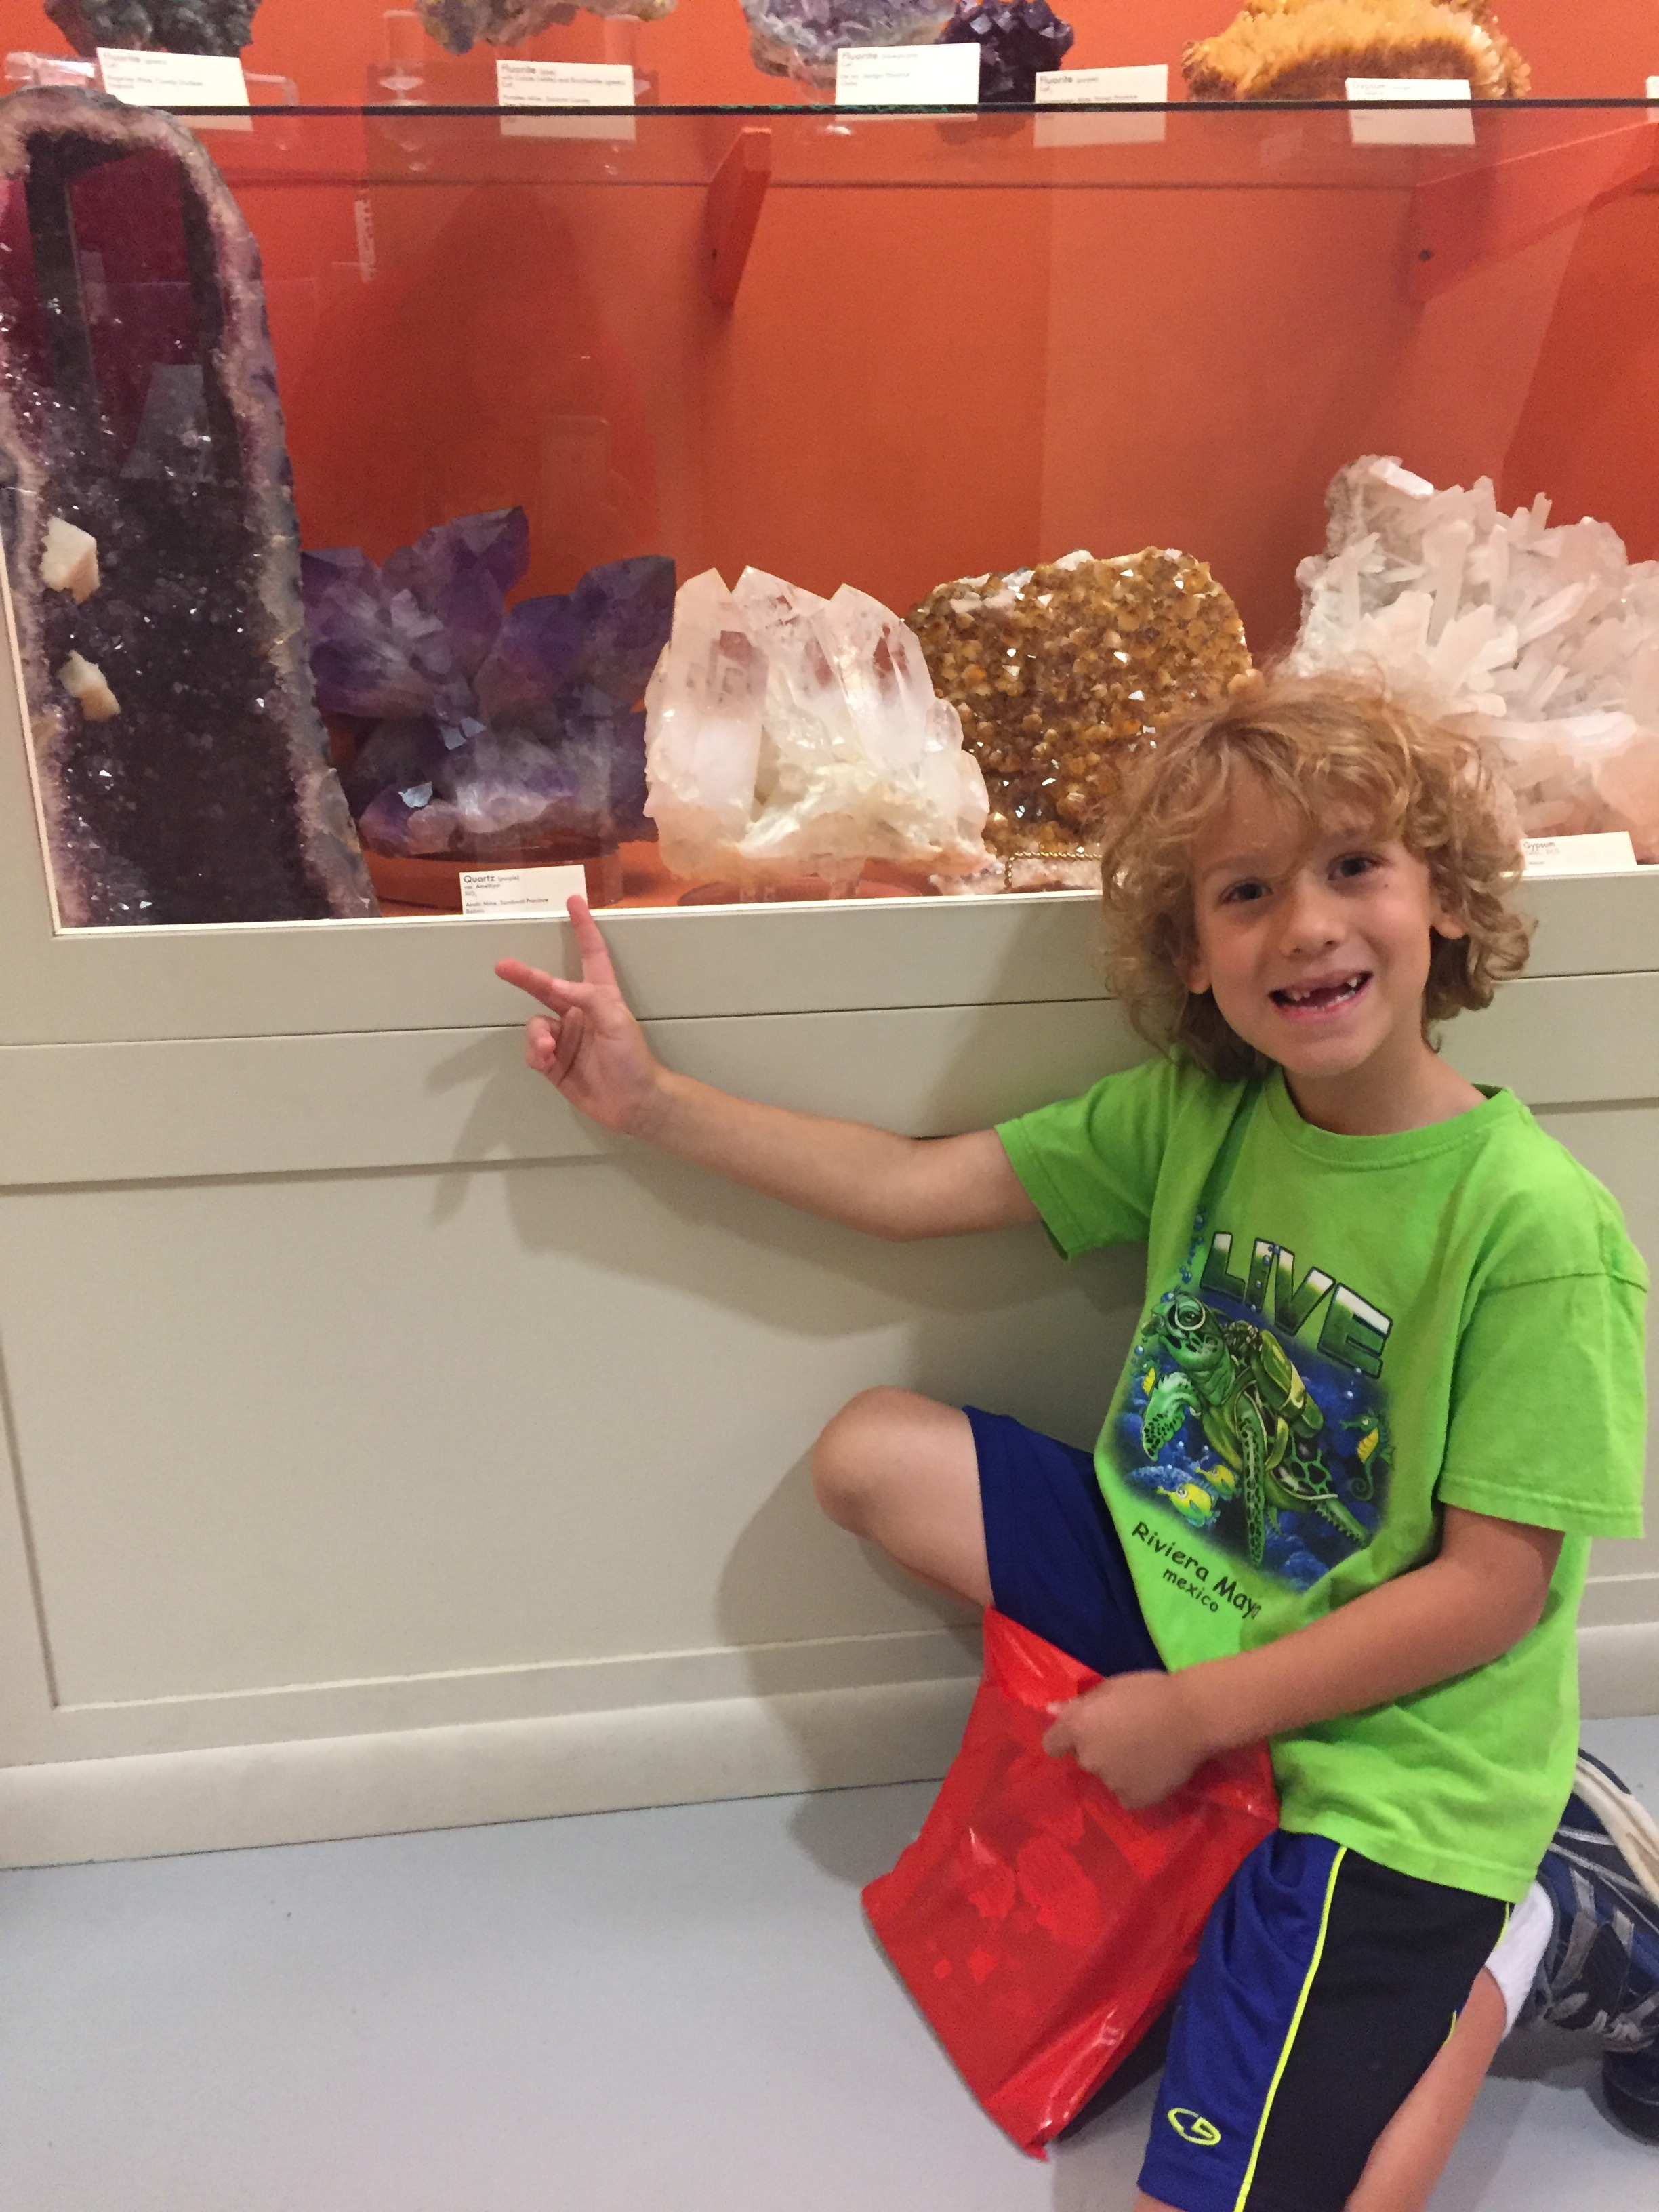 The awesome rock collection was one of DZ's favorite parts!